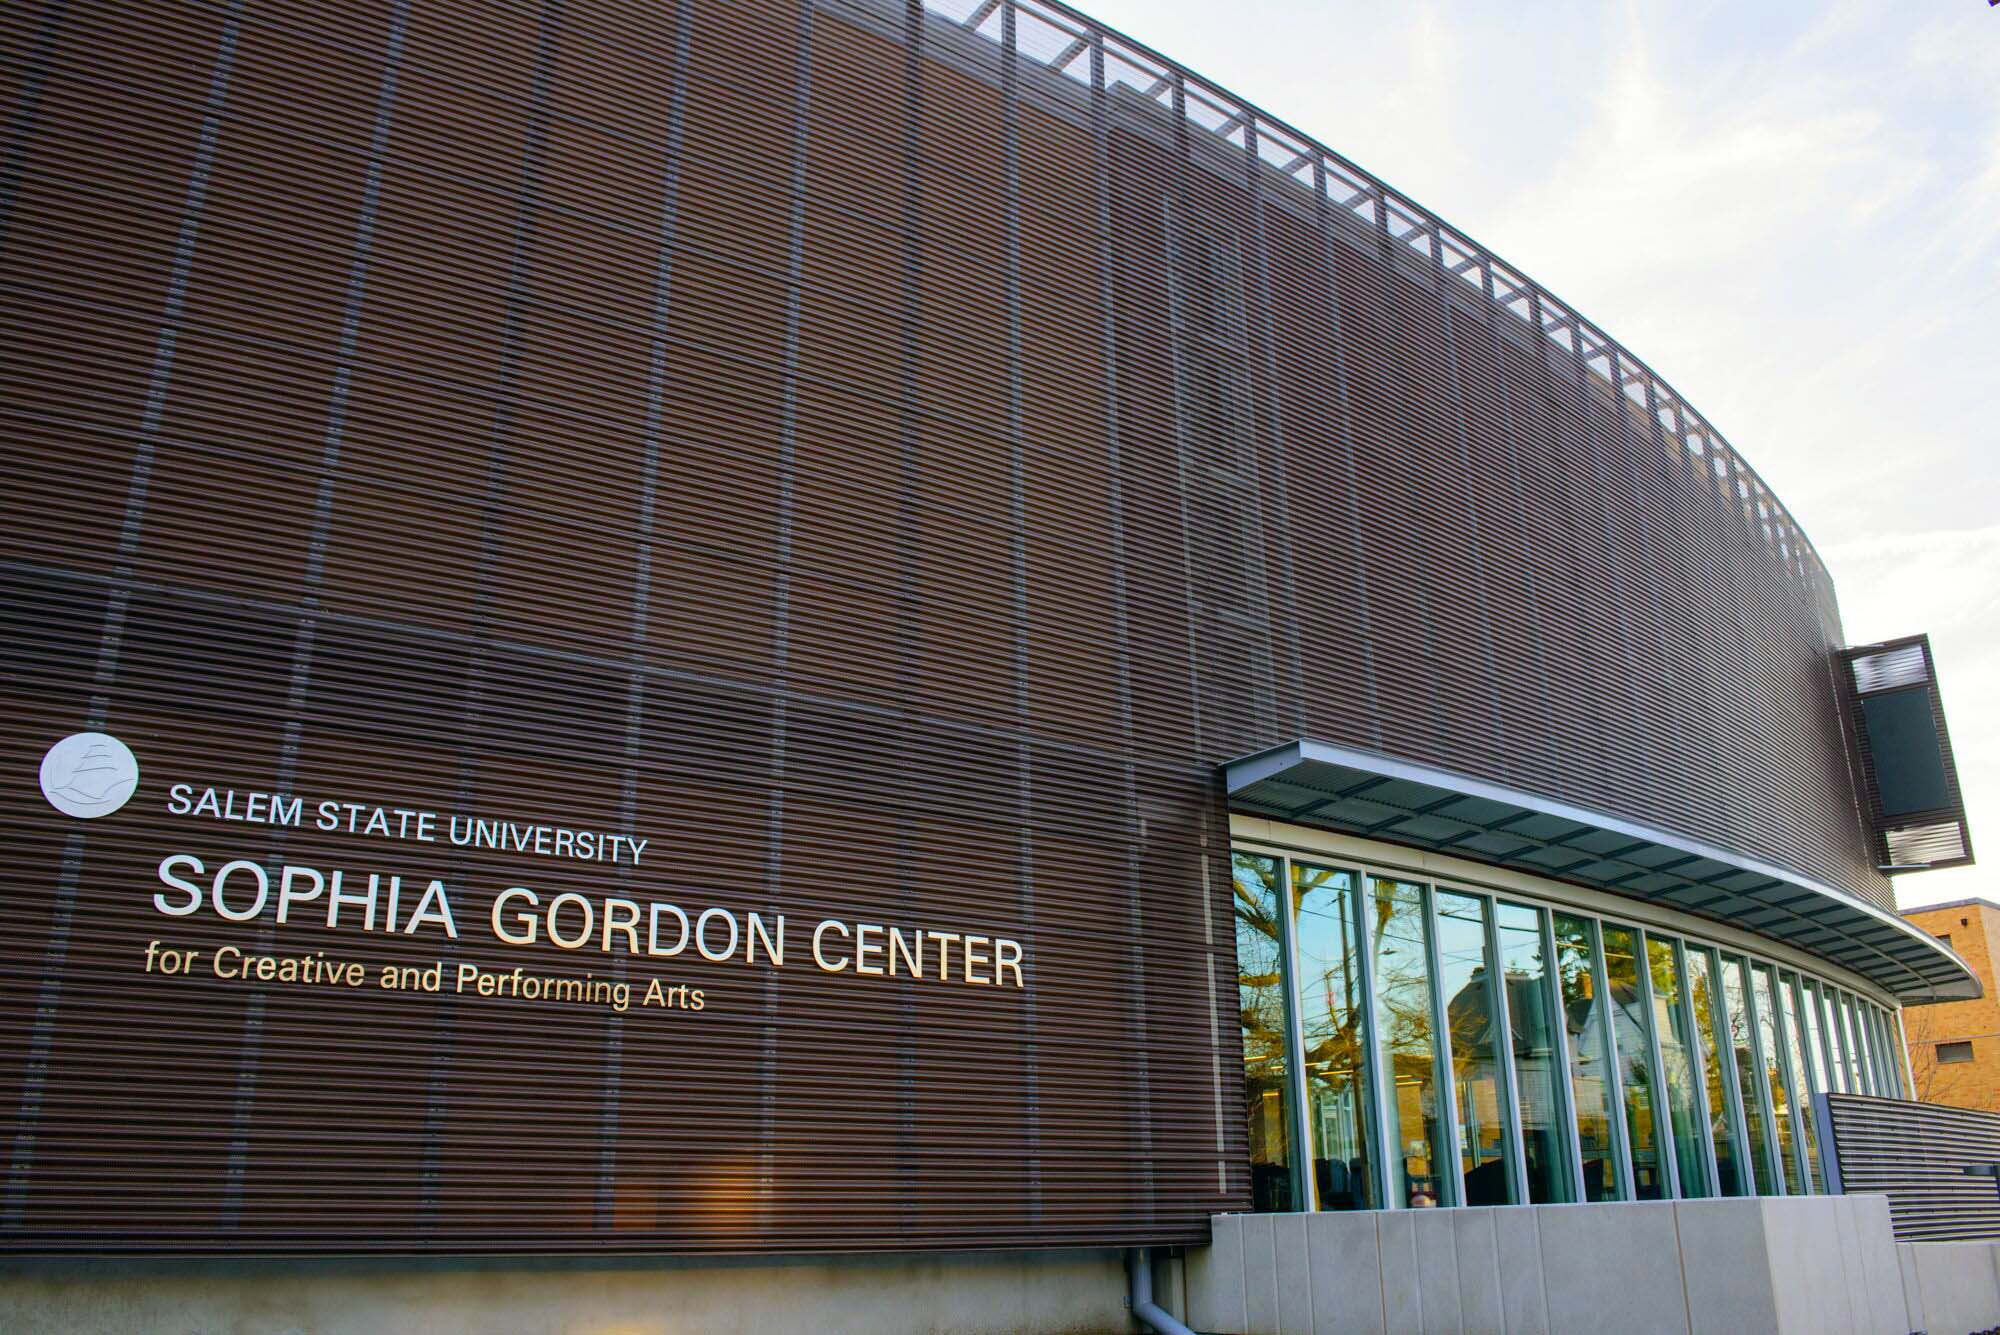 Sophia Gordon Center for Creative and Performing Arts